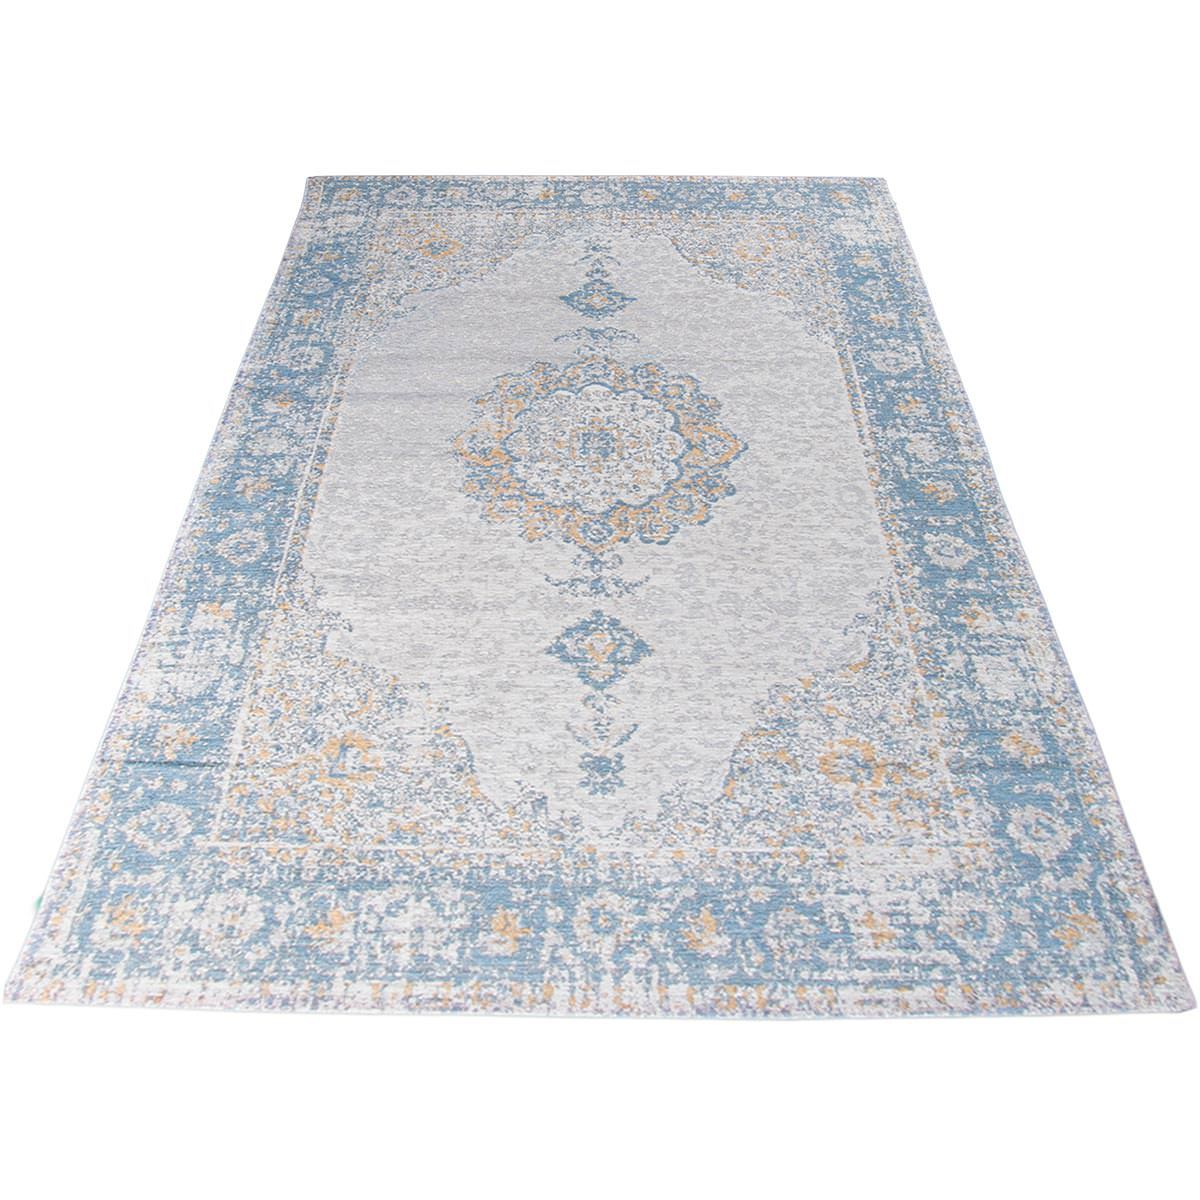 Marseille Rug 34 Blue/Beige/Yellow 2